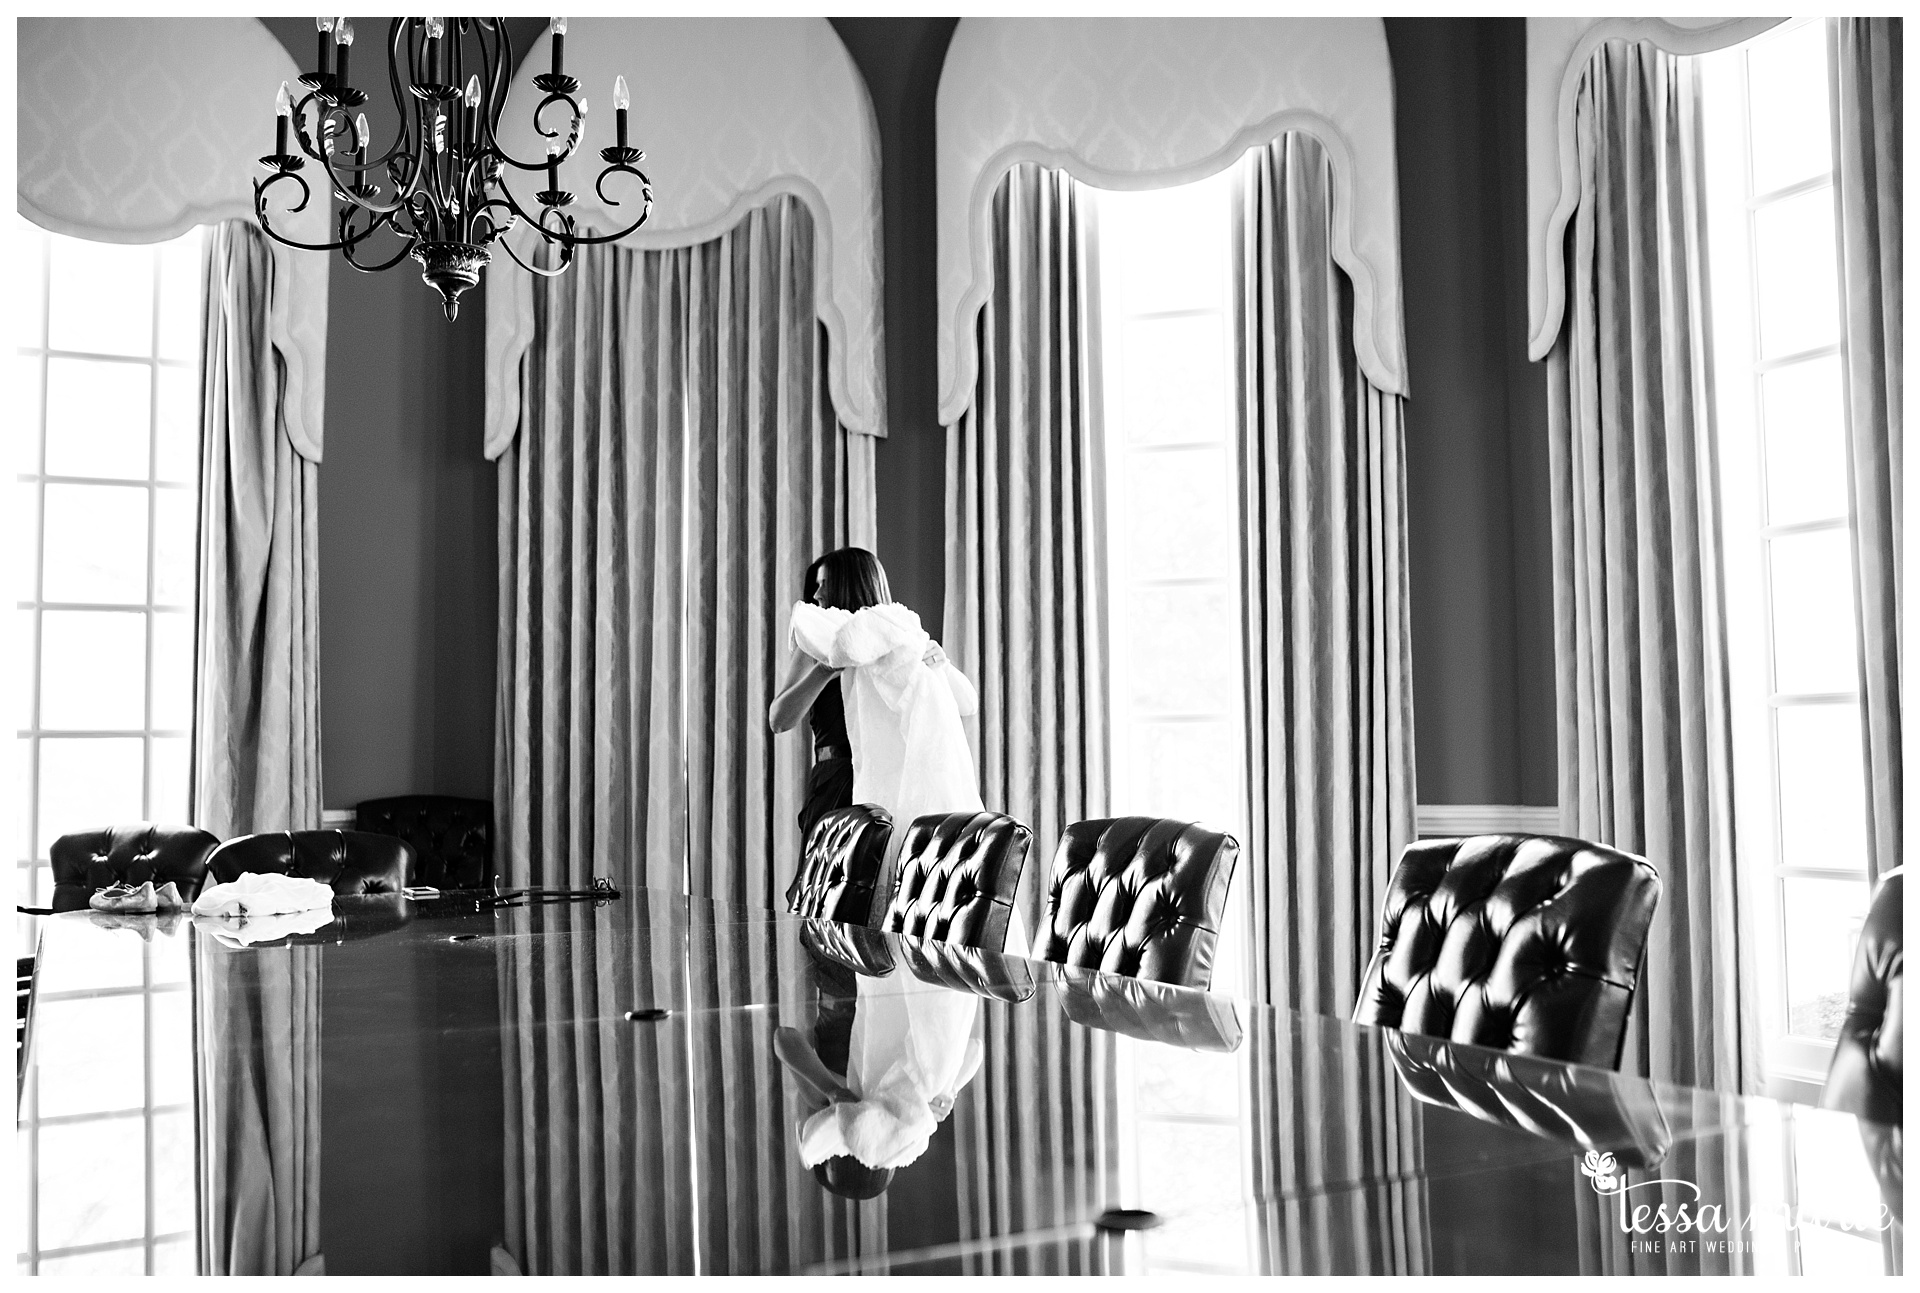 tessa_marie_weddings_legacy_story_focused_wedding_pictures_atlanta_wedding_photographer_0063